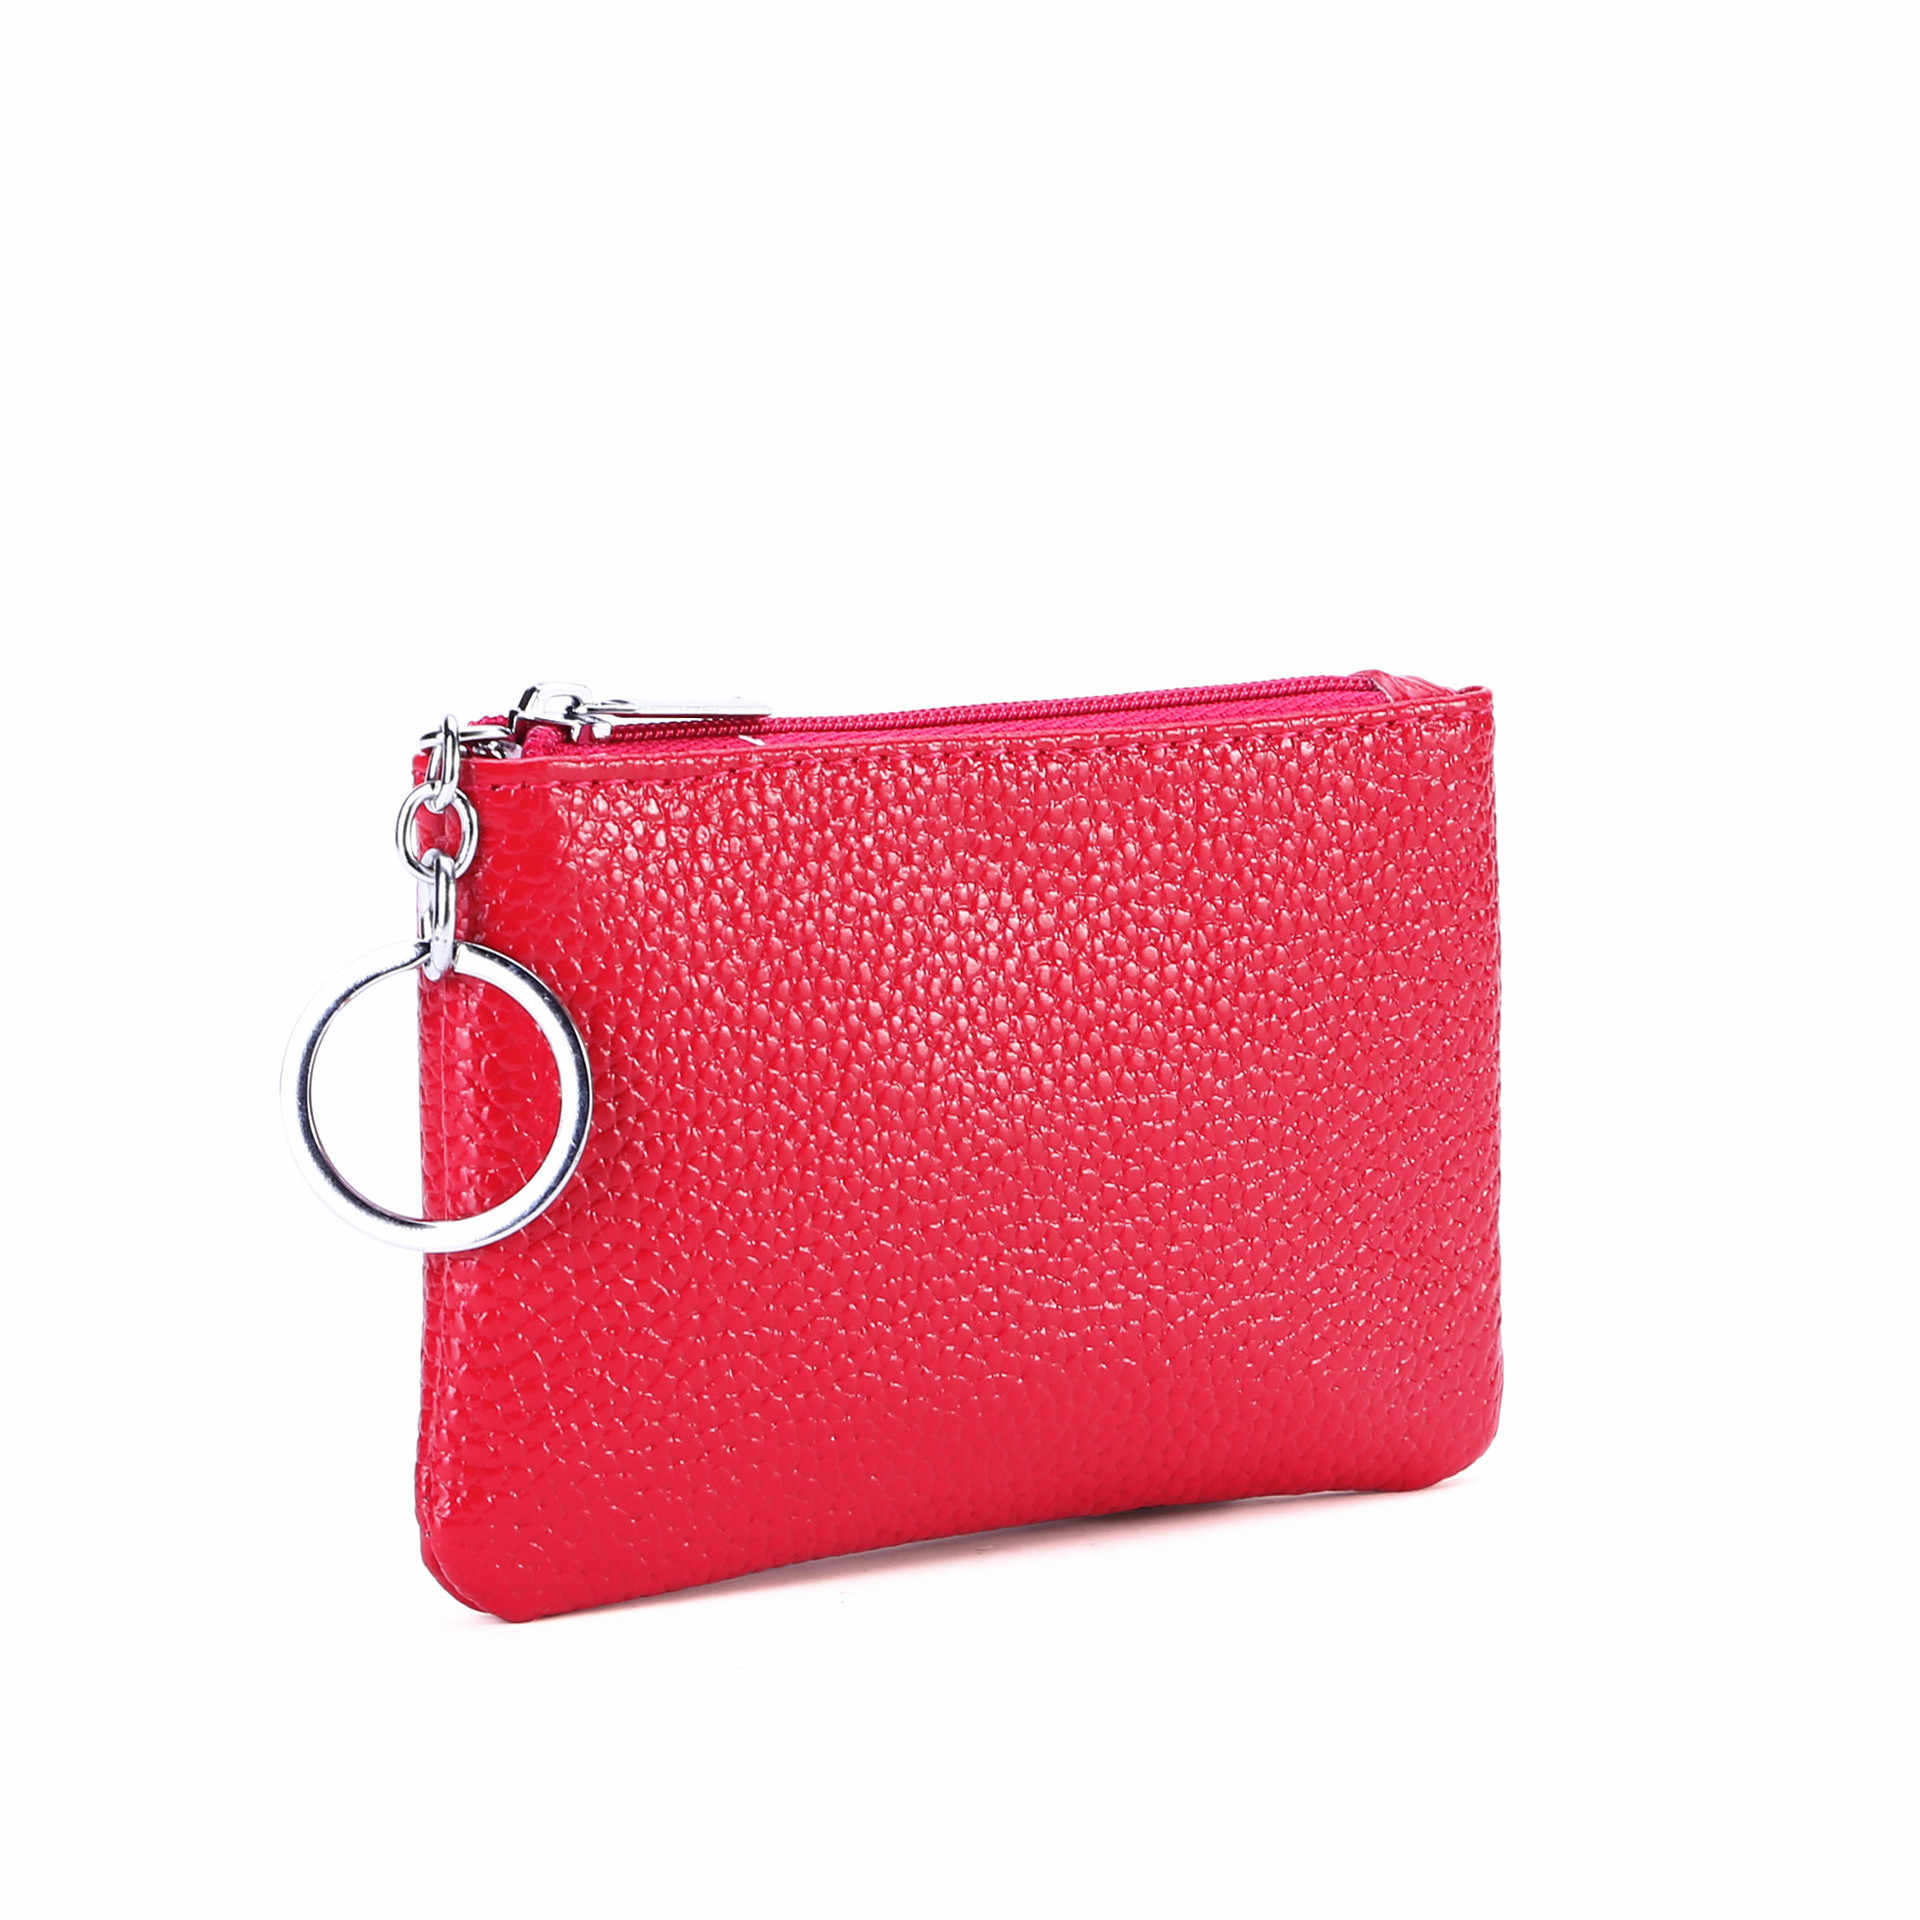 5a36d53bc0ea6 Genuine Leather Wallet for Women and Men Coin Purse Mini Keychains Small  Real Wallets with Key